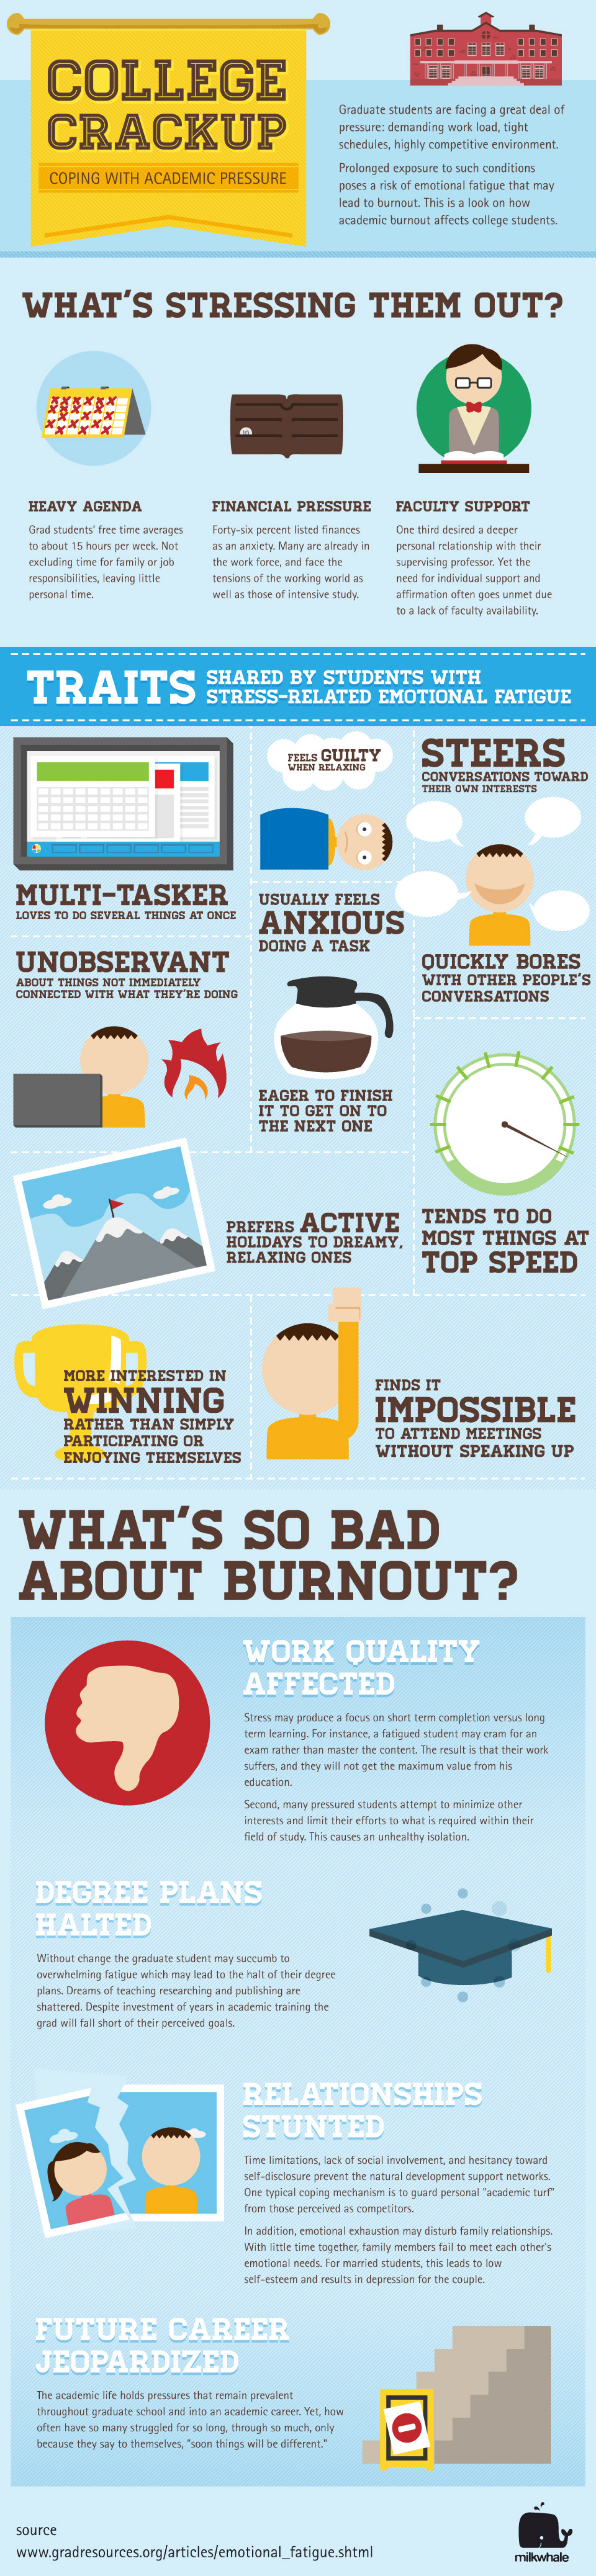 College Crackup: Coping with Academic Pressure Infographic